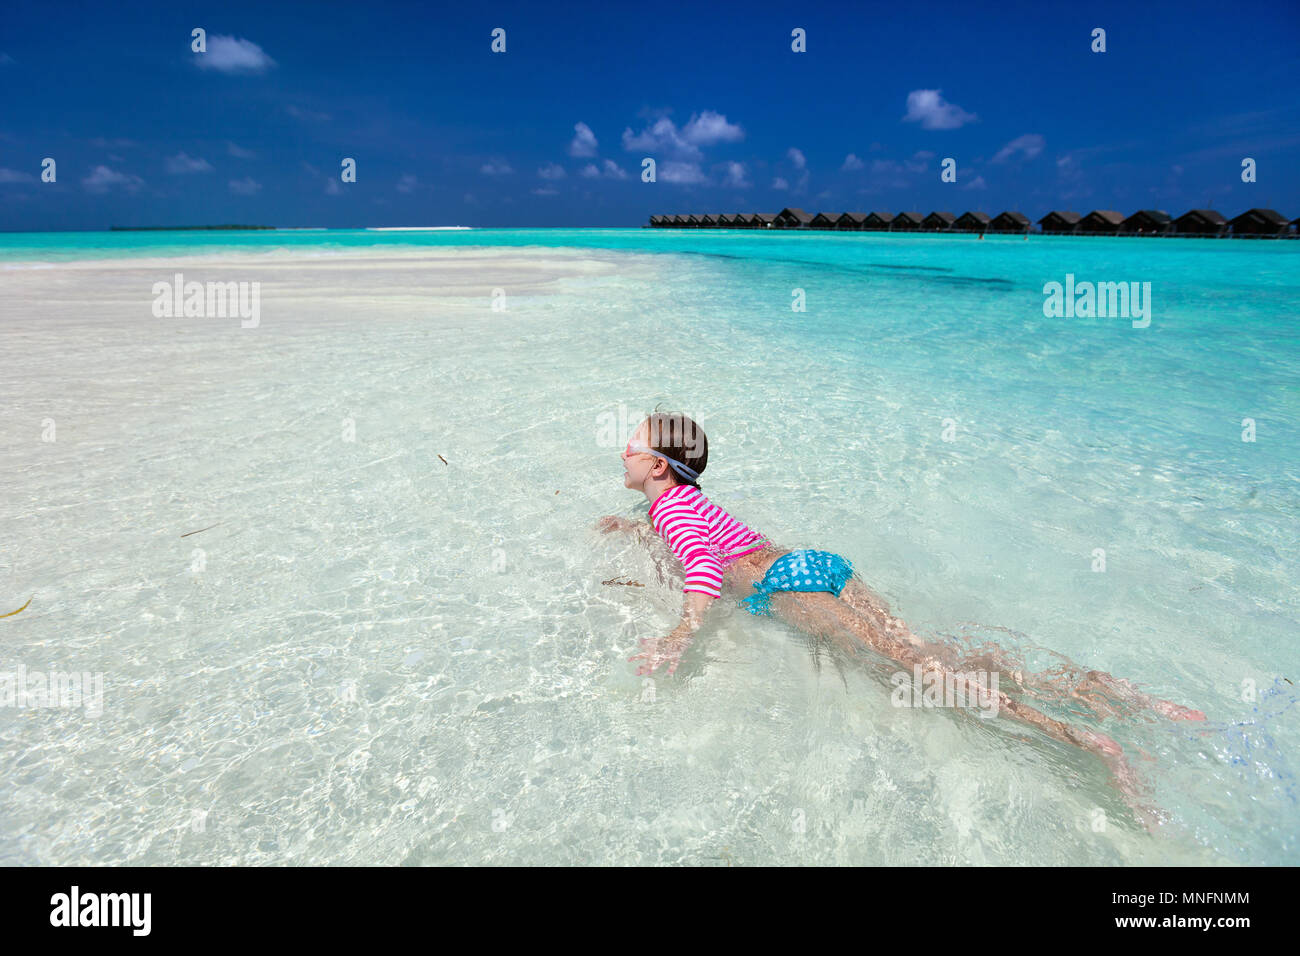 Little girl in a colorful sun protection swimwear on vacation swimming in a shallow water at tropical lagoon - Stock Image